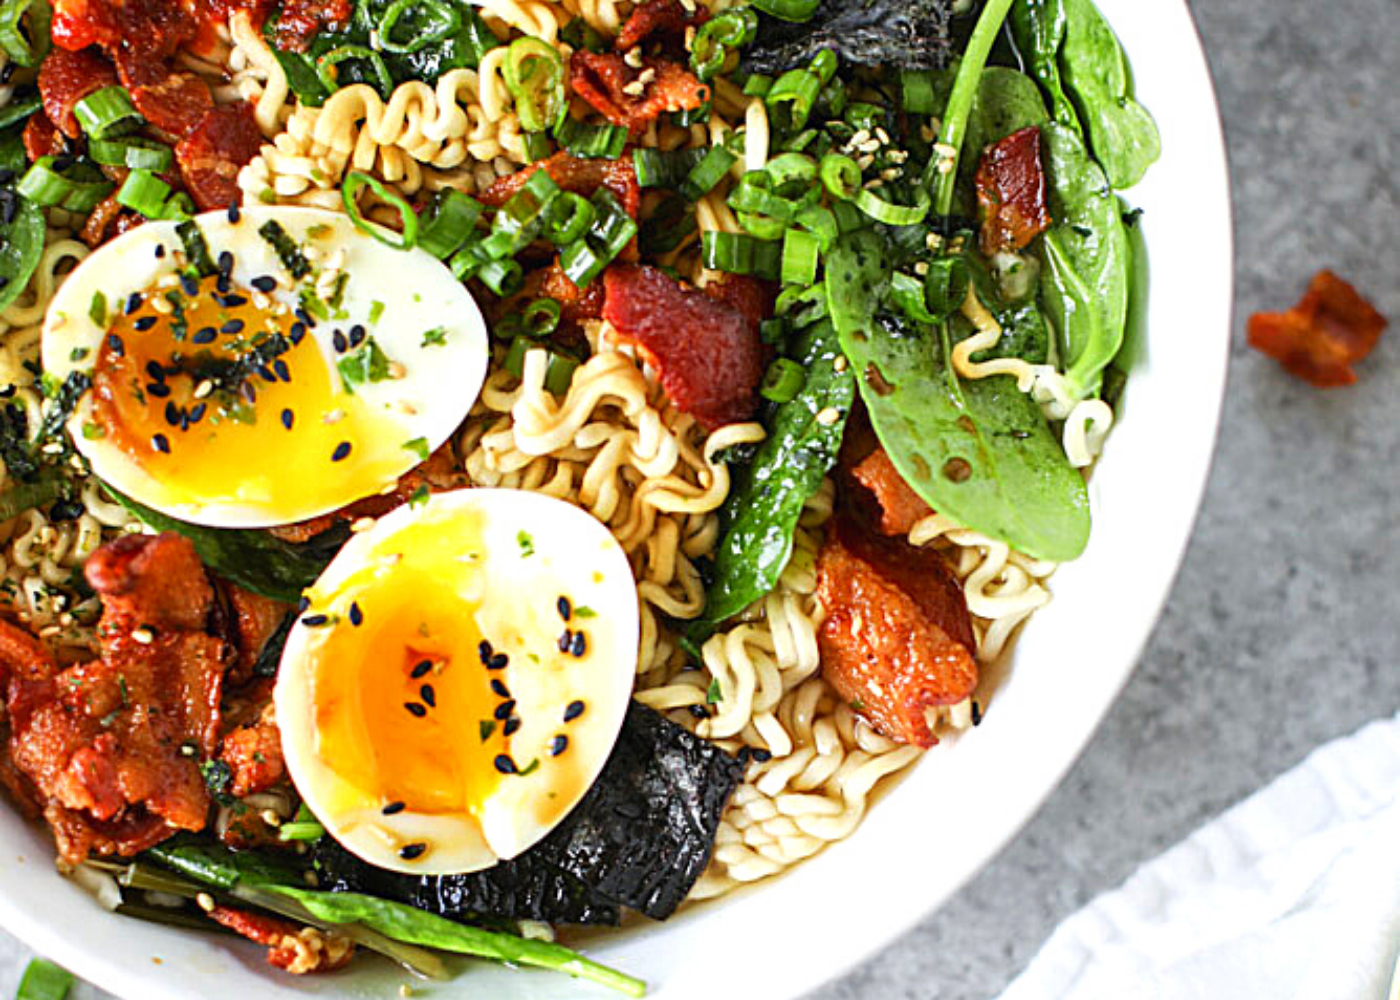 Best upgraded instant noodle recipes: Bacon and eggs ramen